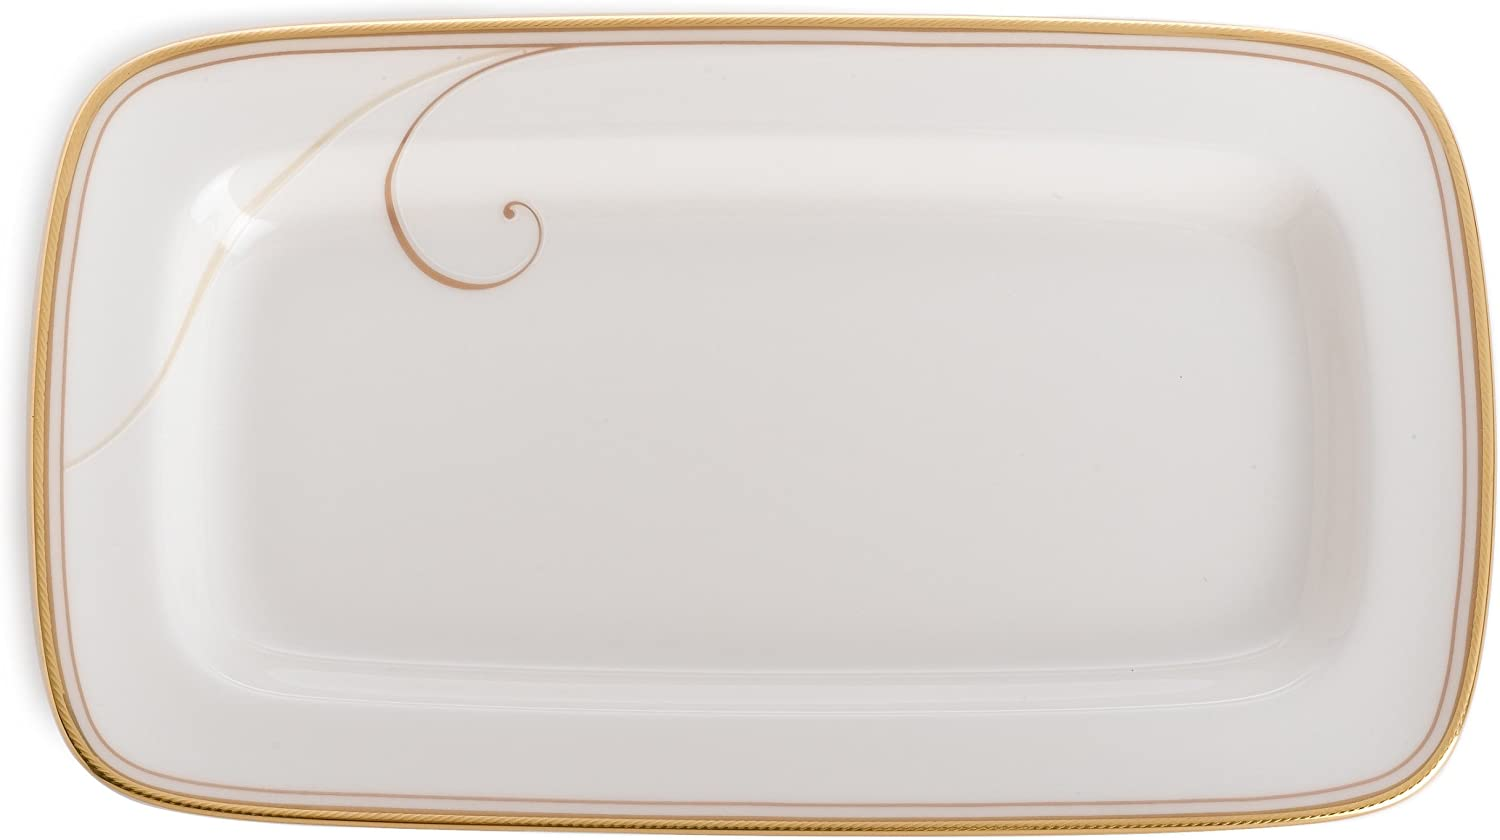 Noritake Golden Wave Butter Relish Tray Butter Dishes Butter Dishes